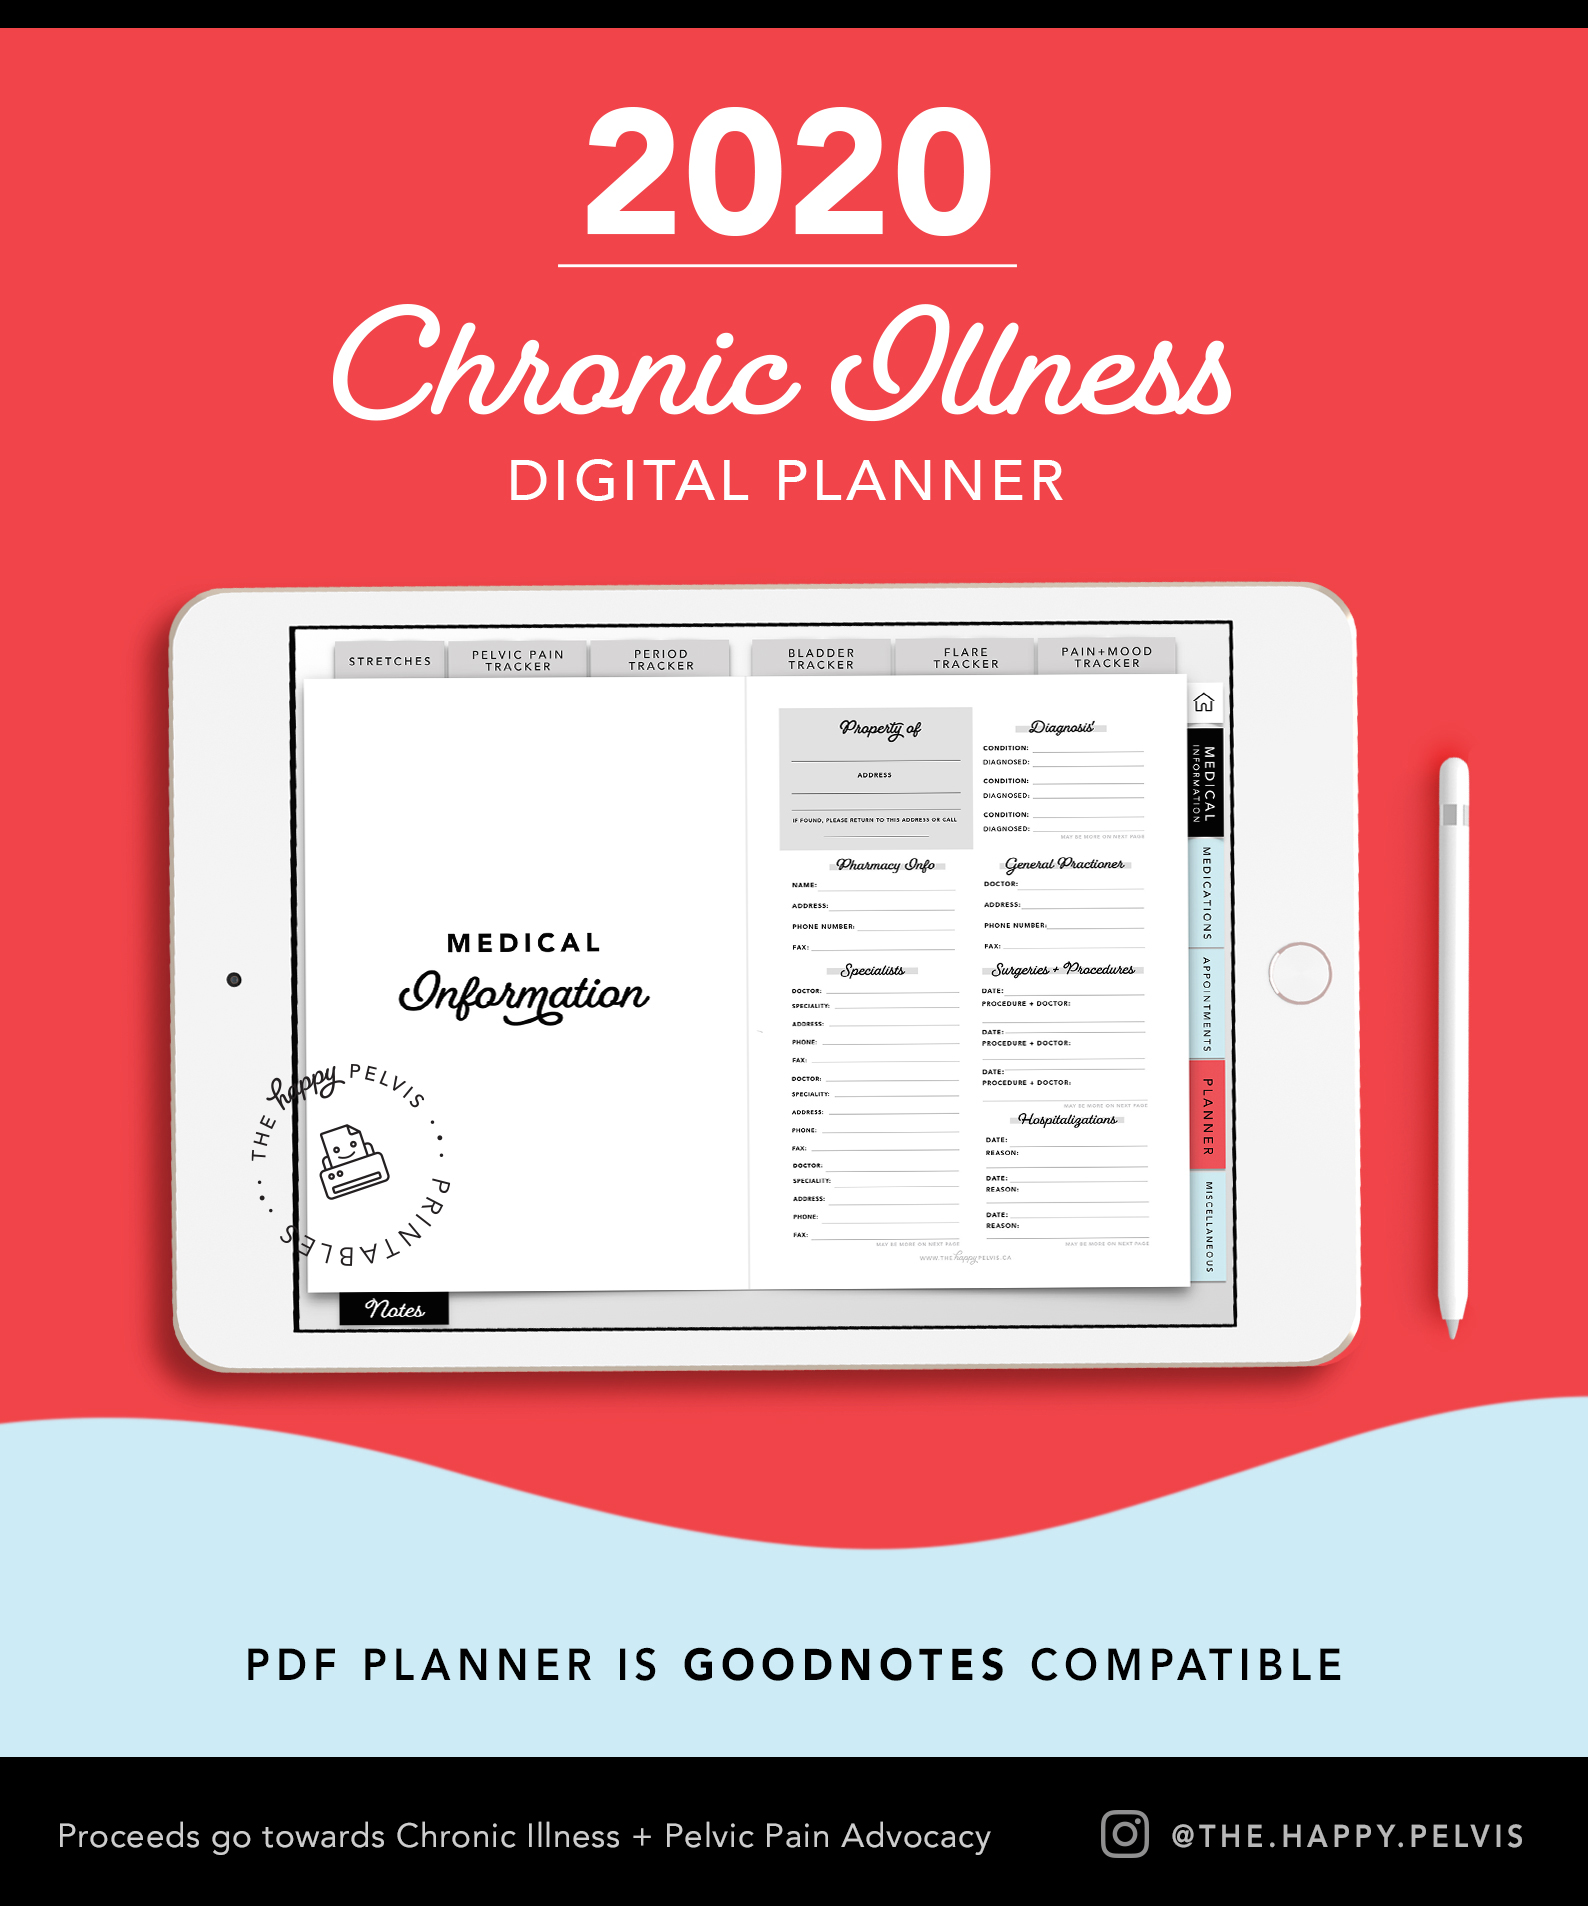 2020_Digital_Planner_Medical_Chronic_Illness